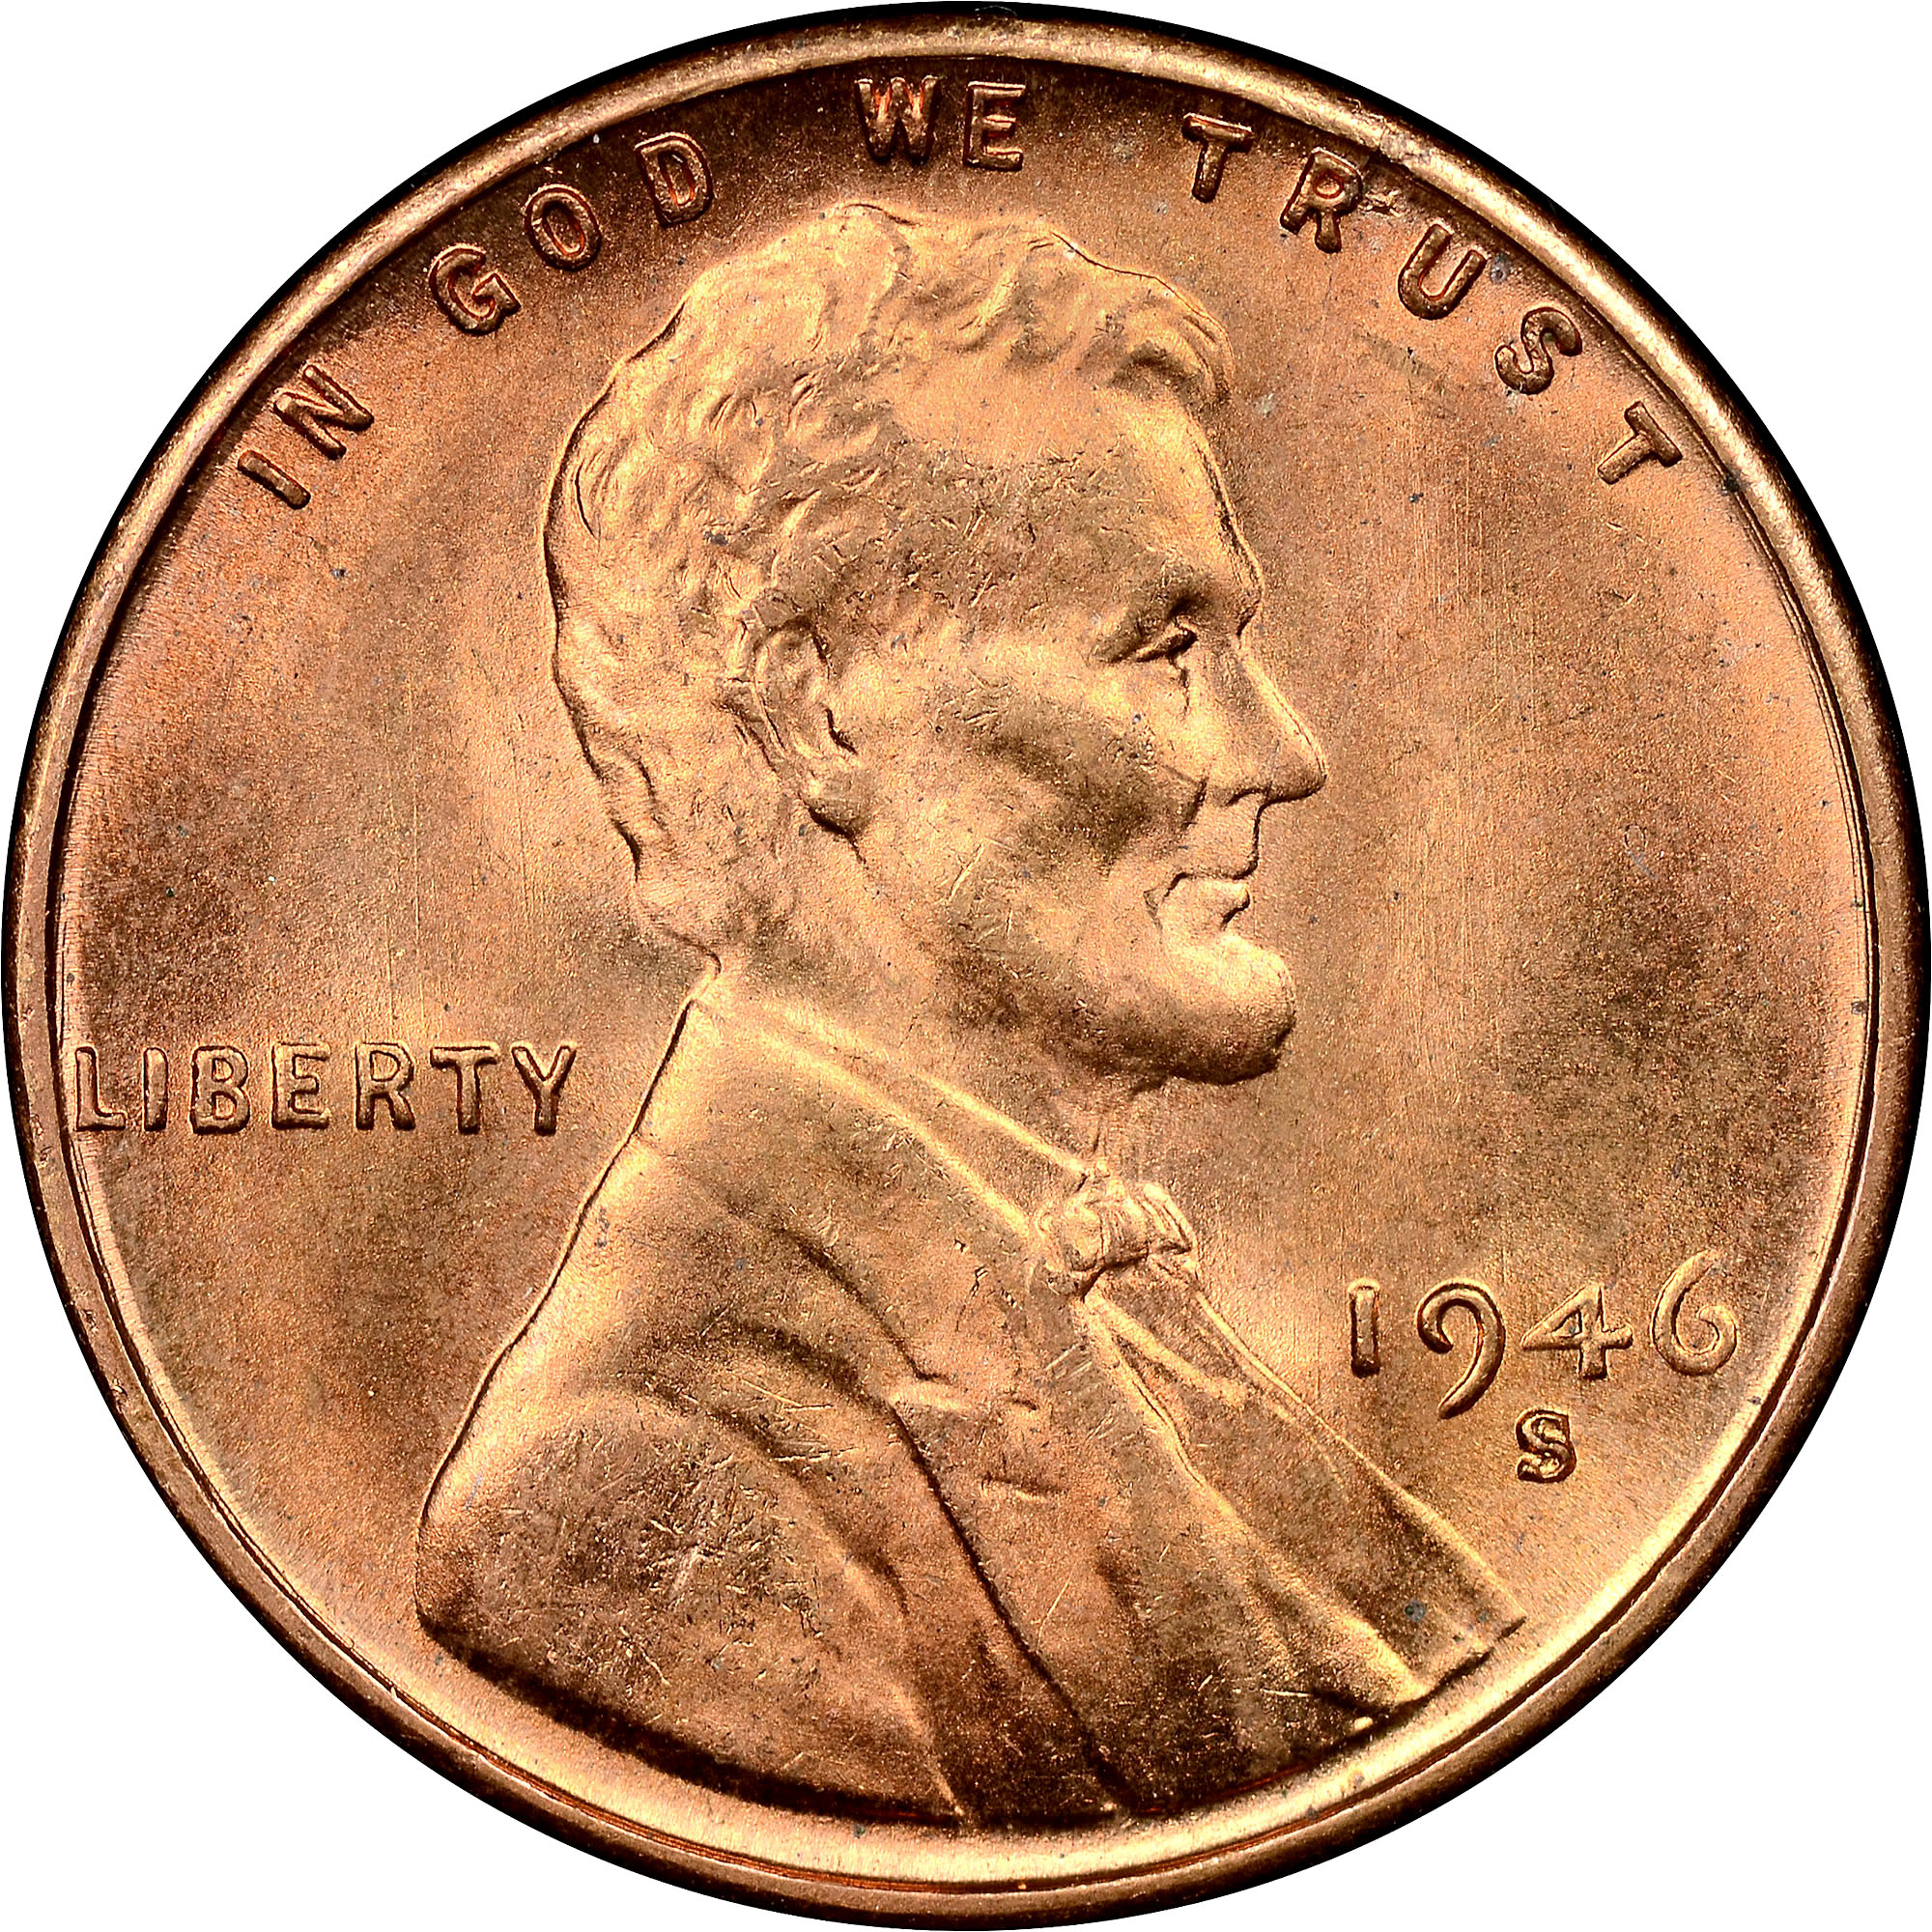 1946 S 1c Ms Lincoln Cents Wheat Reverse Ngc Wheat pennies underwent changes in design and content the lincoln wheat penny is the most collected coin in the world. 1946 s 1c ms lincoln cents wheat